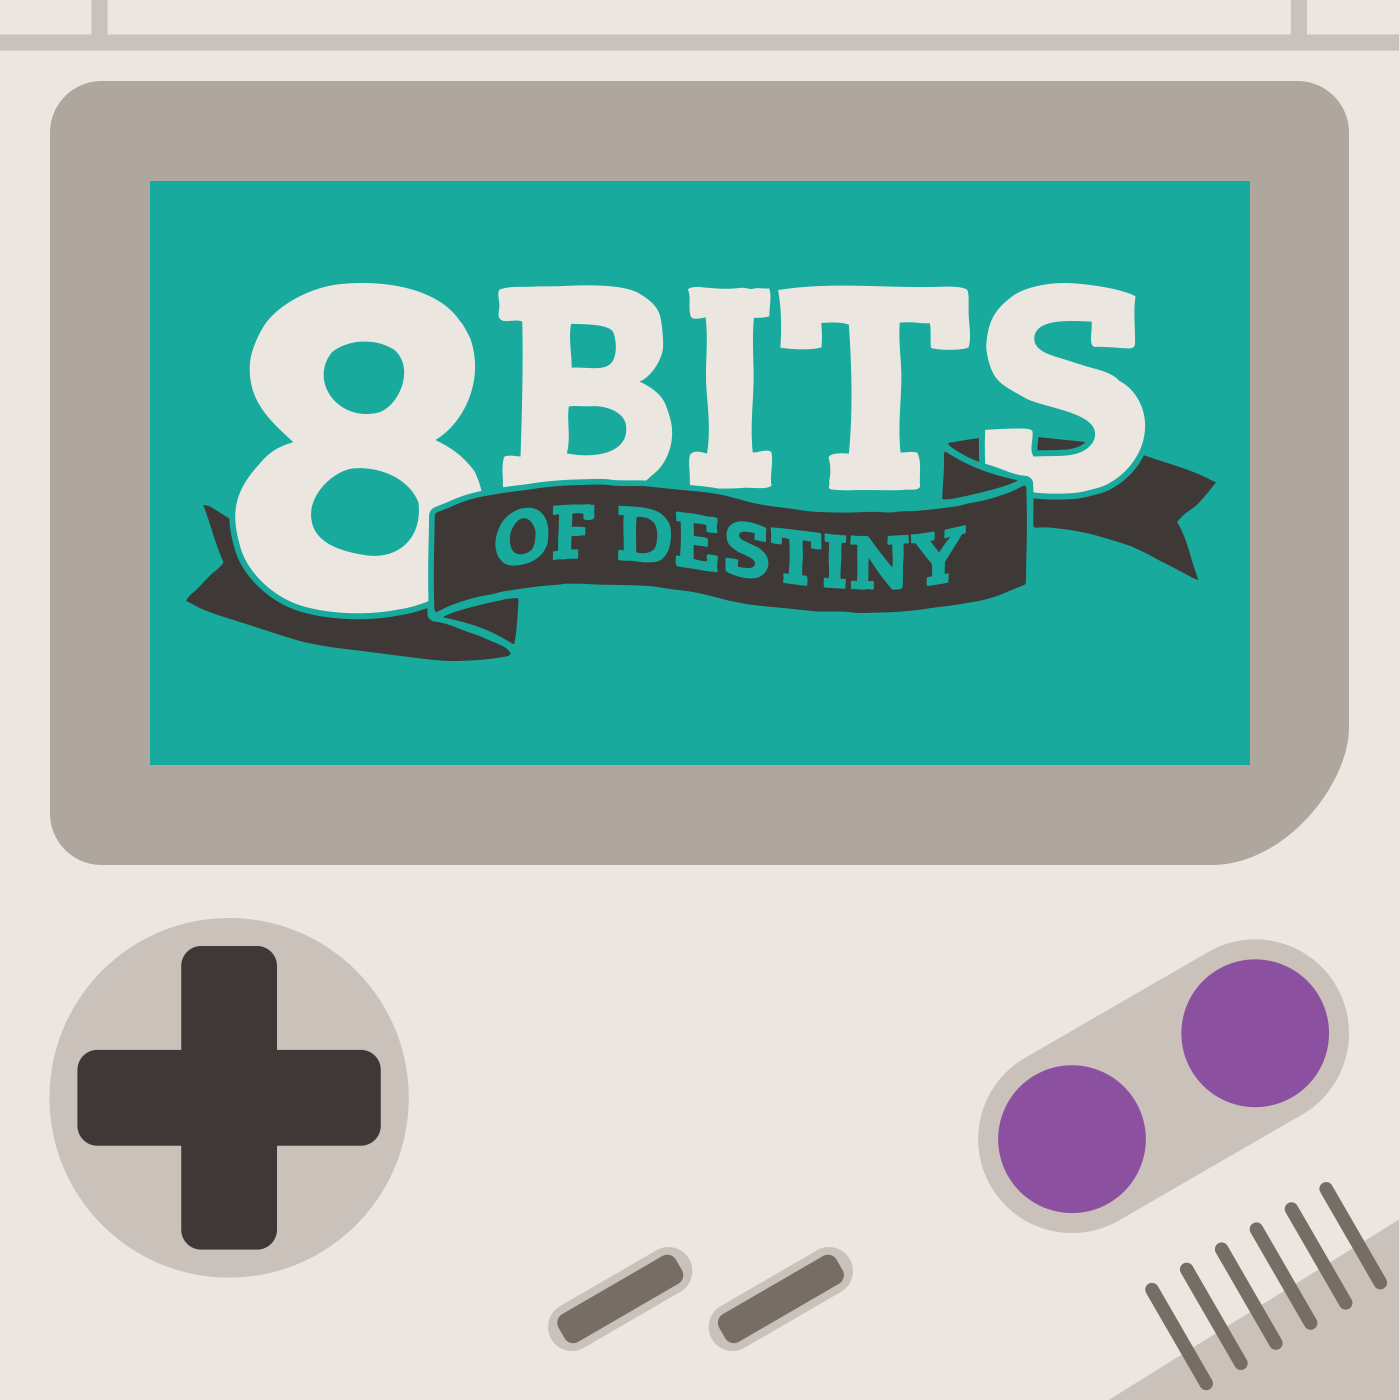 8 Bits of Destiny